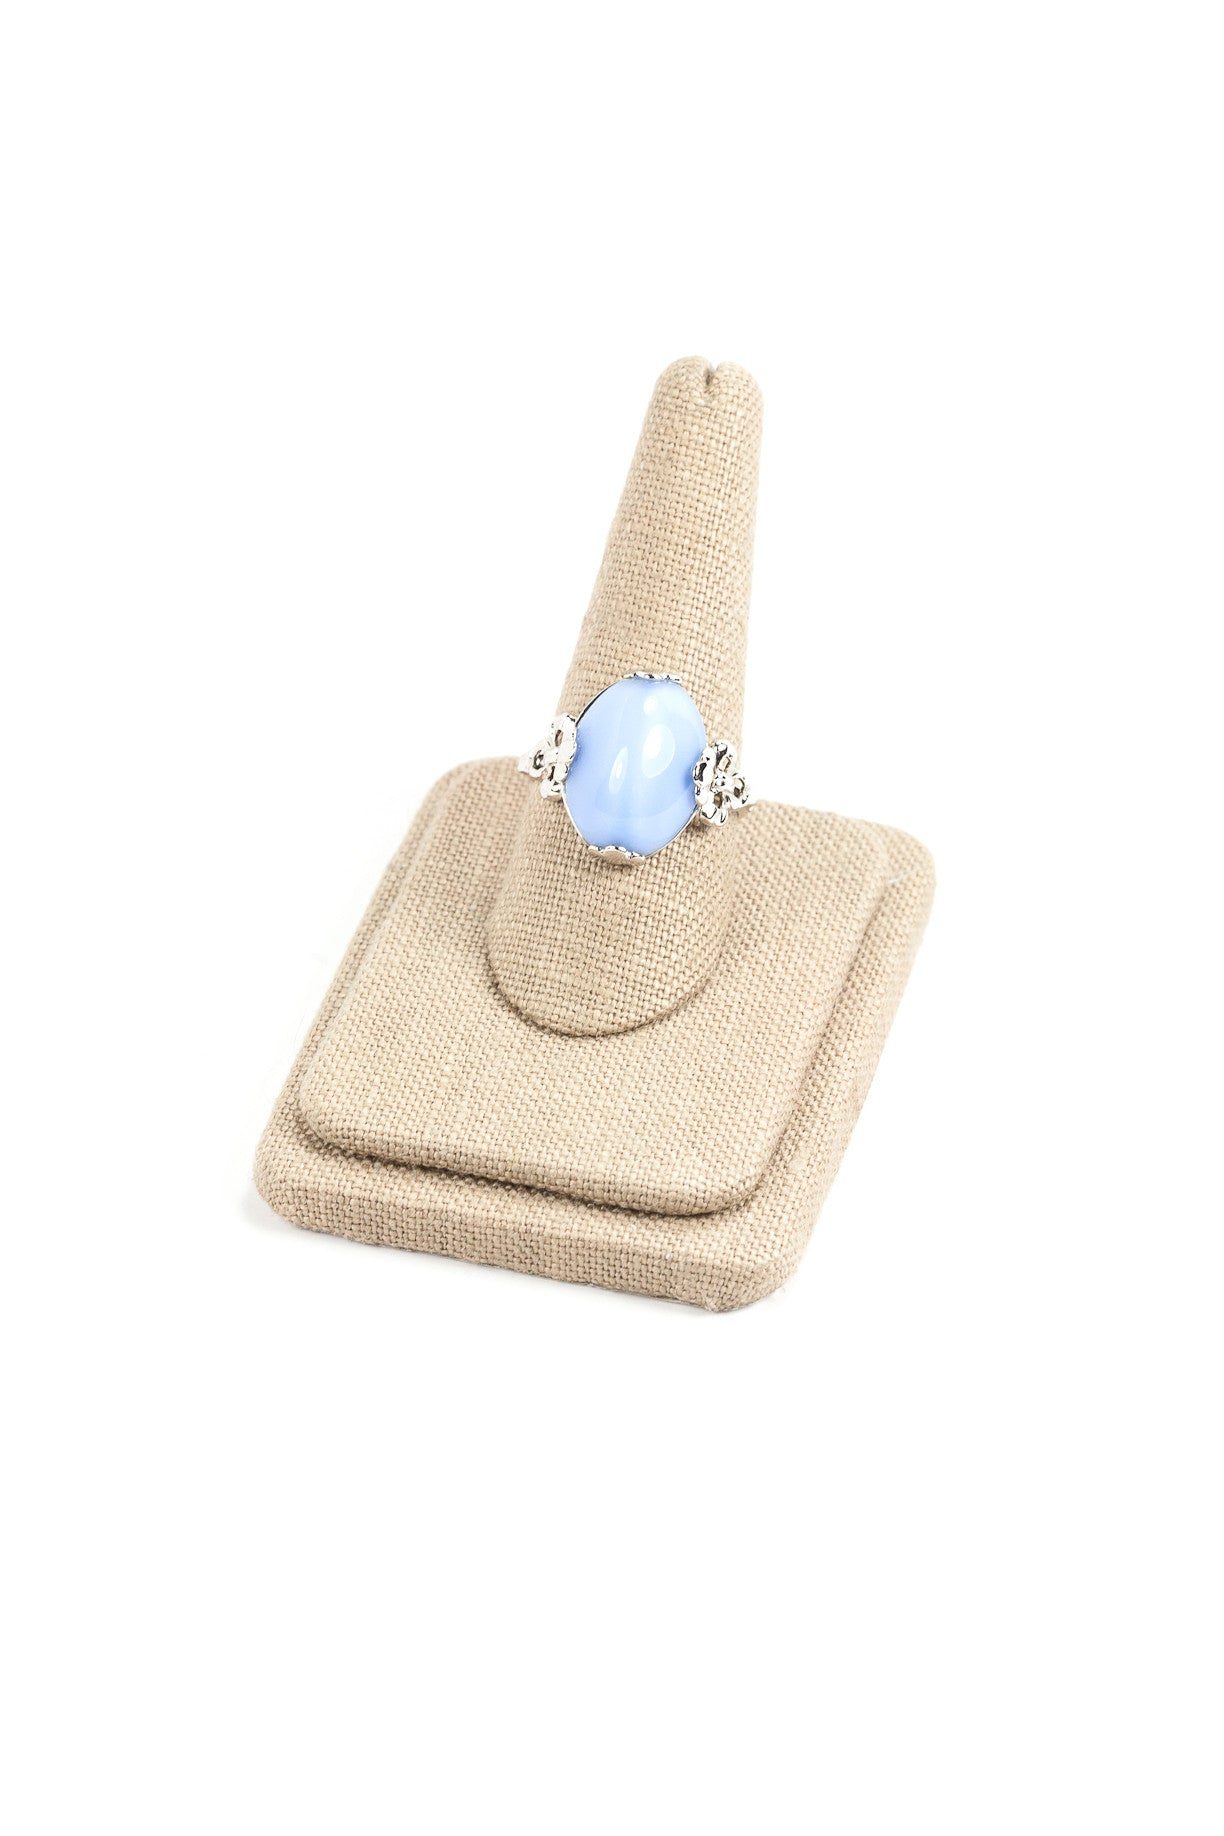 80's__Avon__Baby Blue Ring